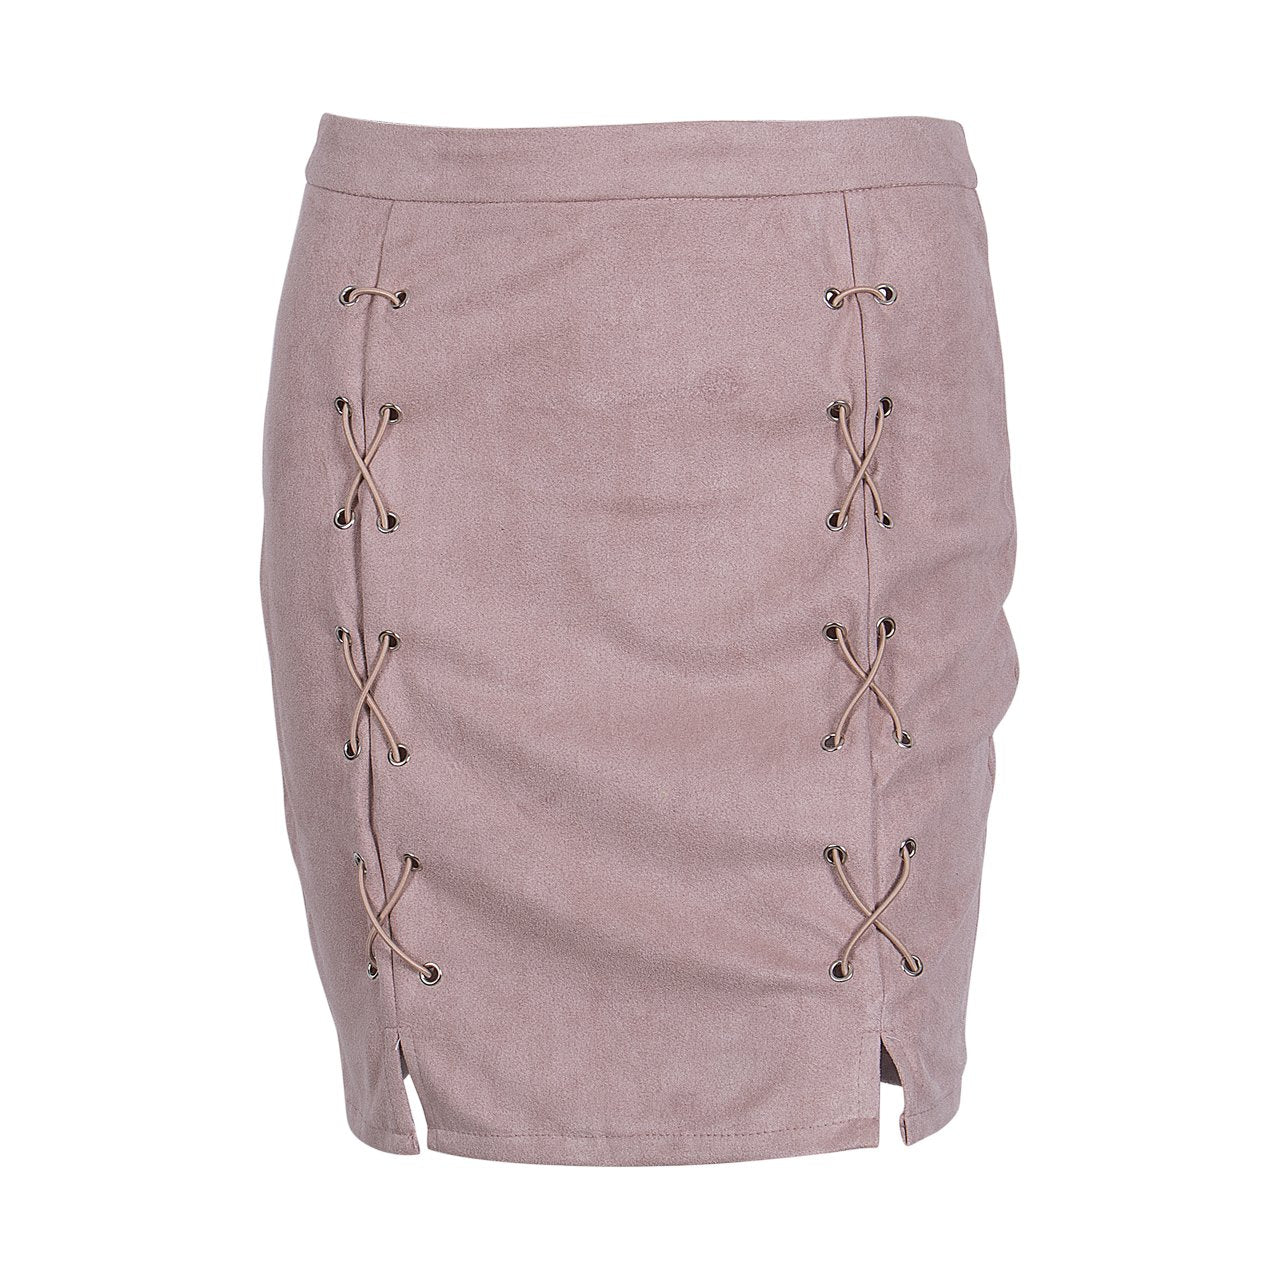 Winter Cross High Waist Skirt 2018 Womens Fashion Autumn Lace Up Leatherliilgal-liilgal